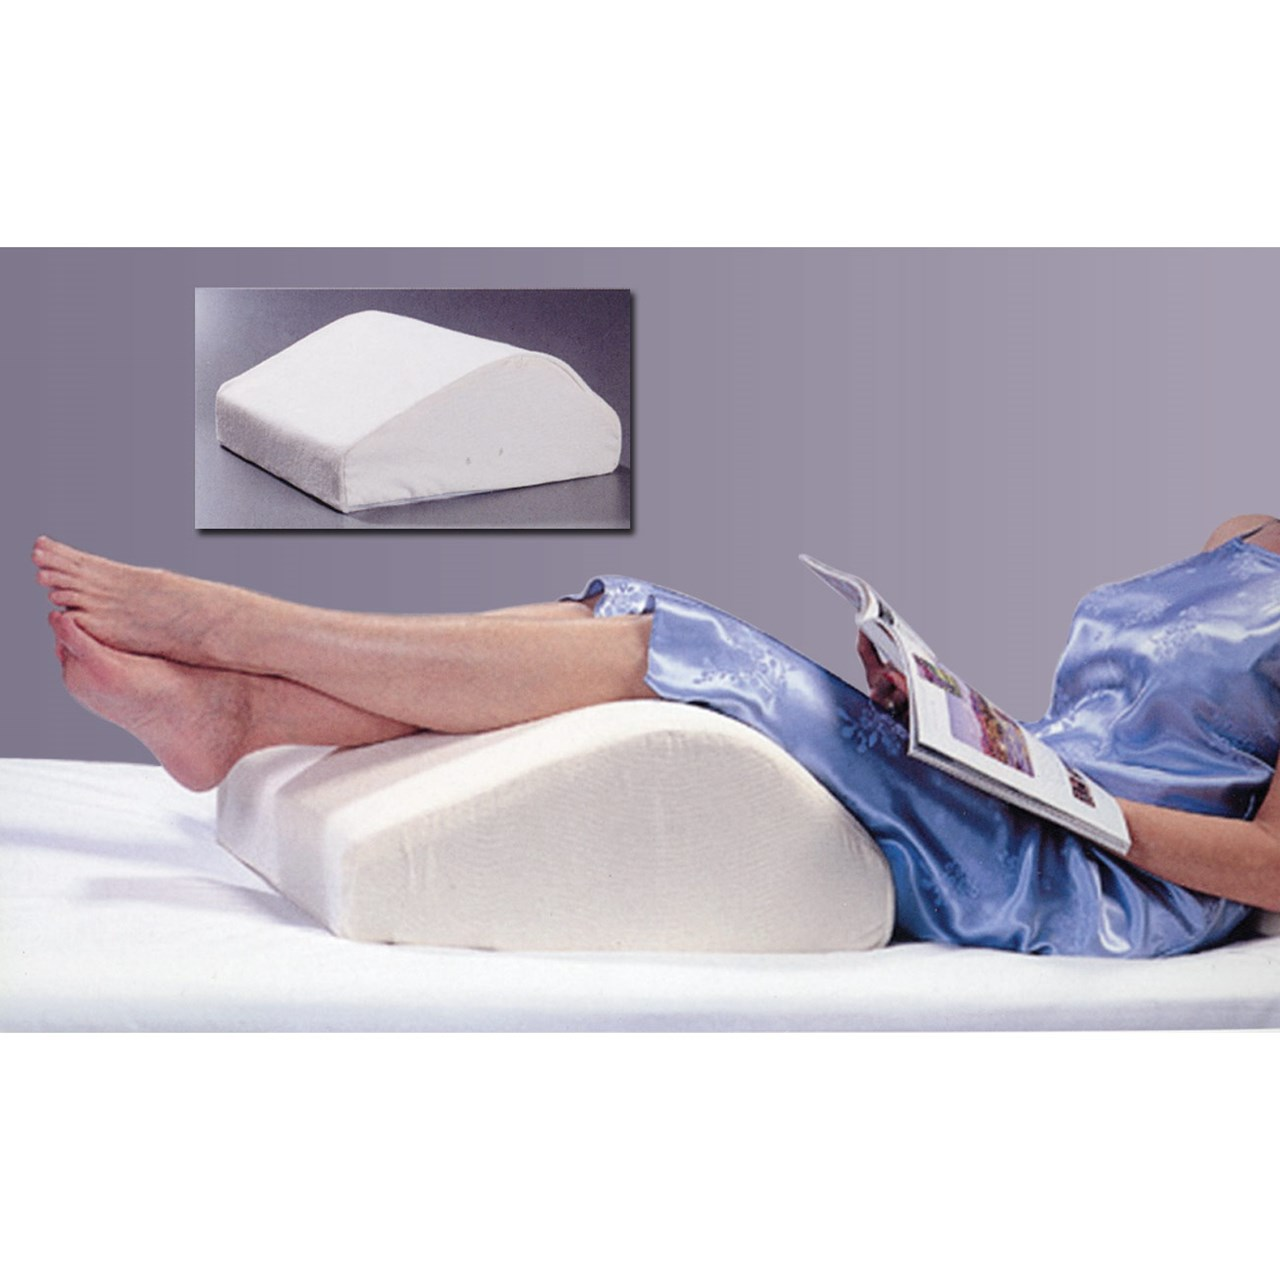 Bed wedge for legs - Spine Reliever Leg Wedge Extra Large